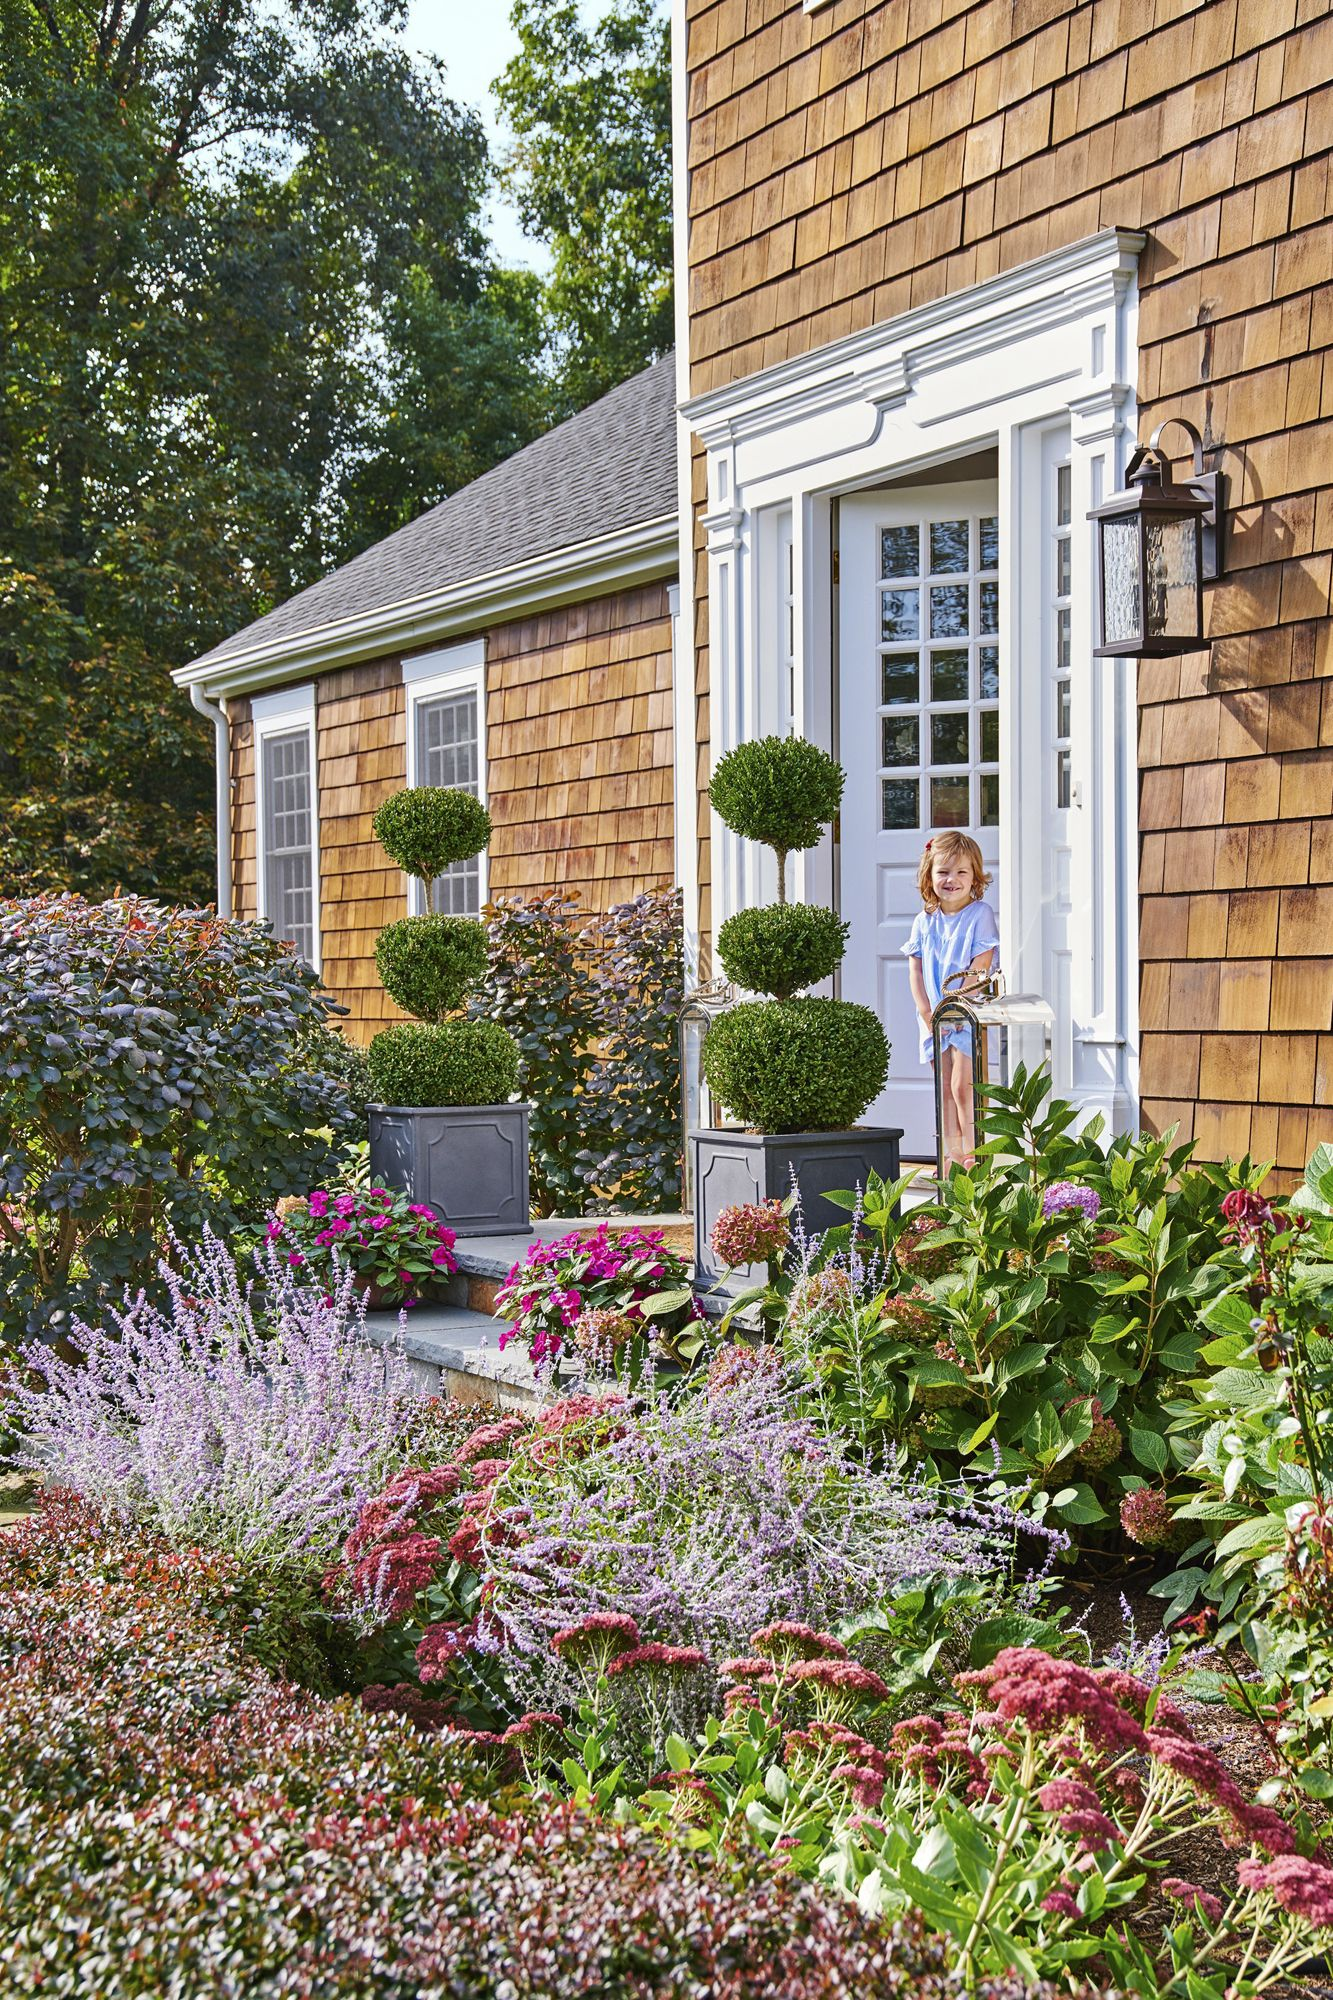 52 Best Front Yard and Backyard Landscaping Ideas ... on Landscape Front Yard Ideas  id=86768